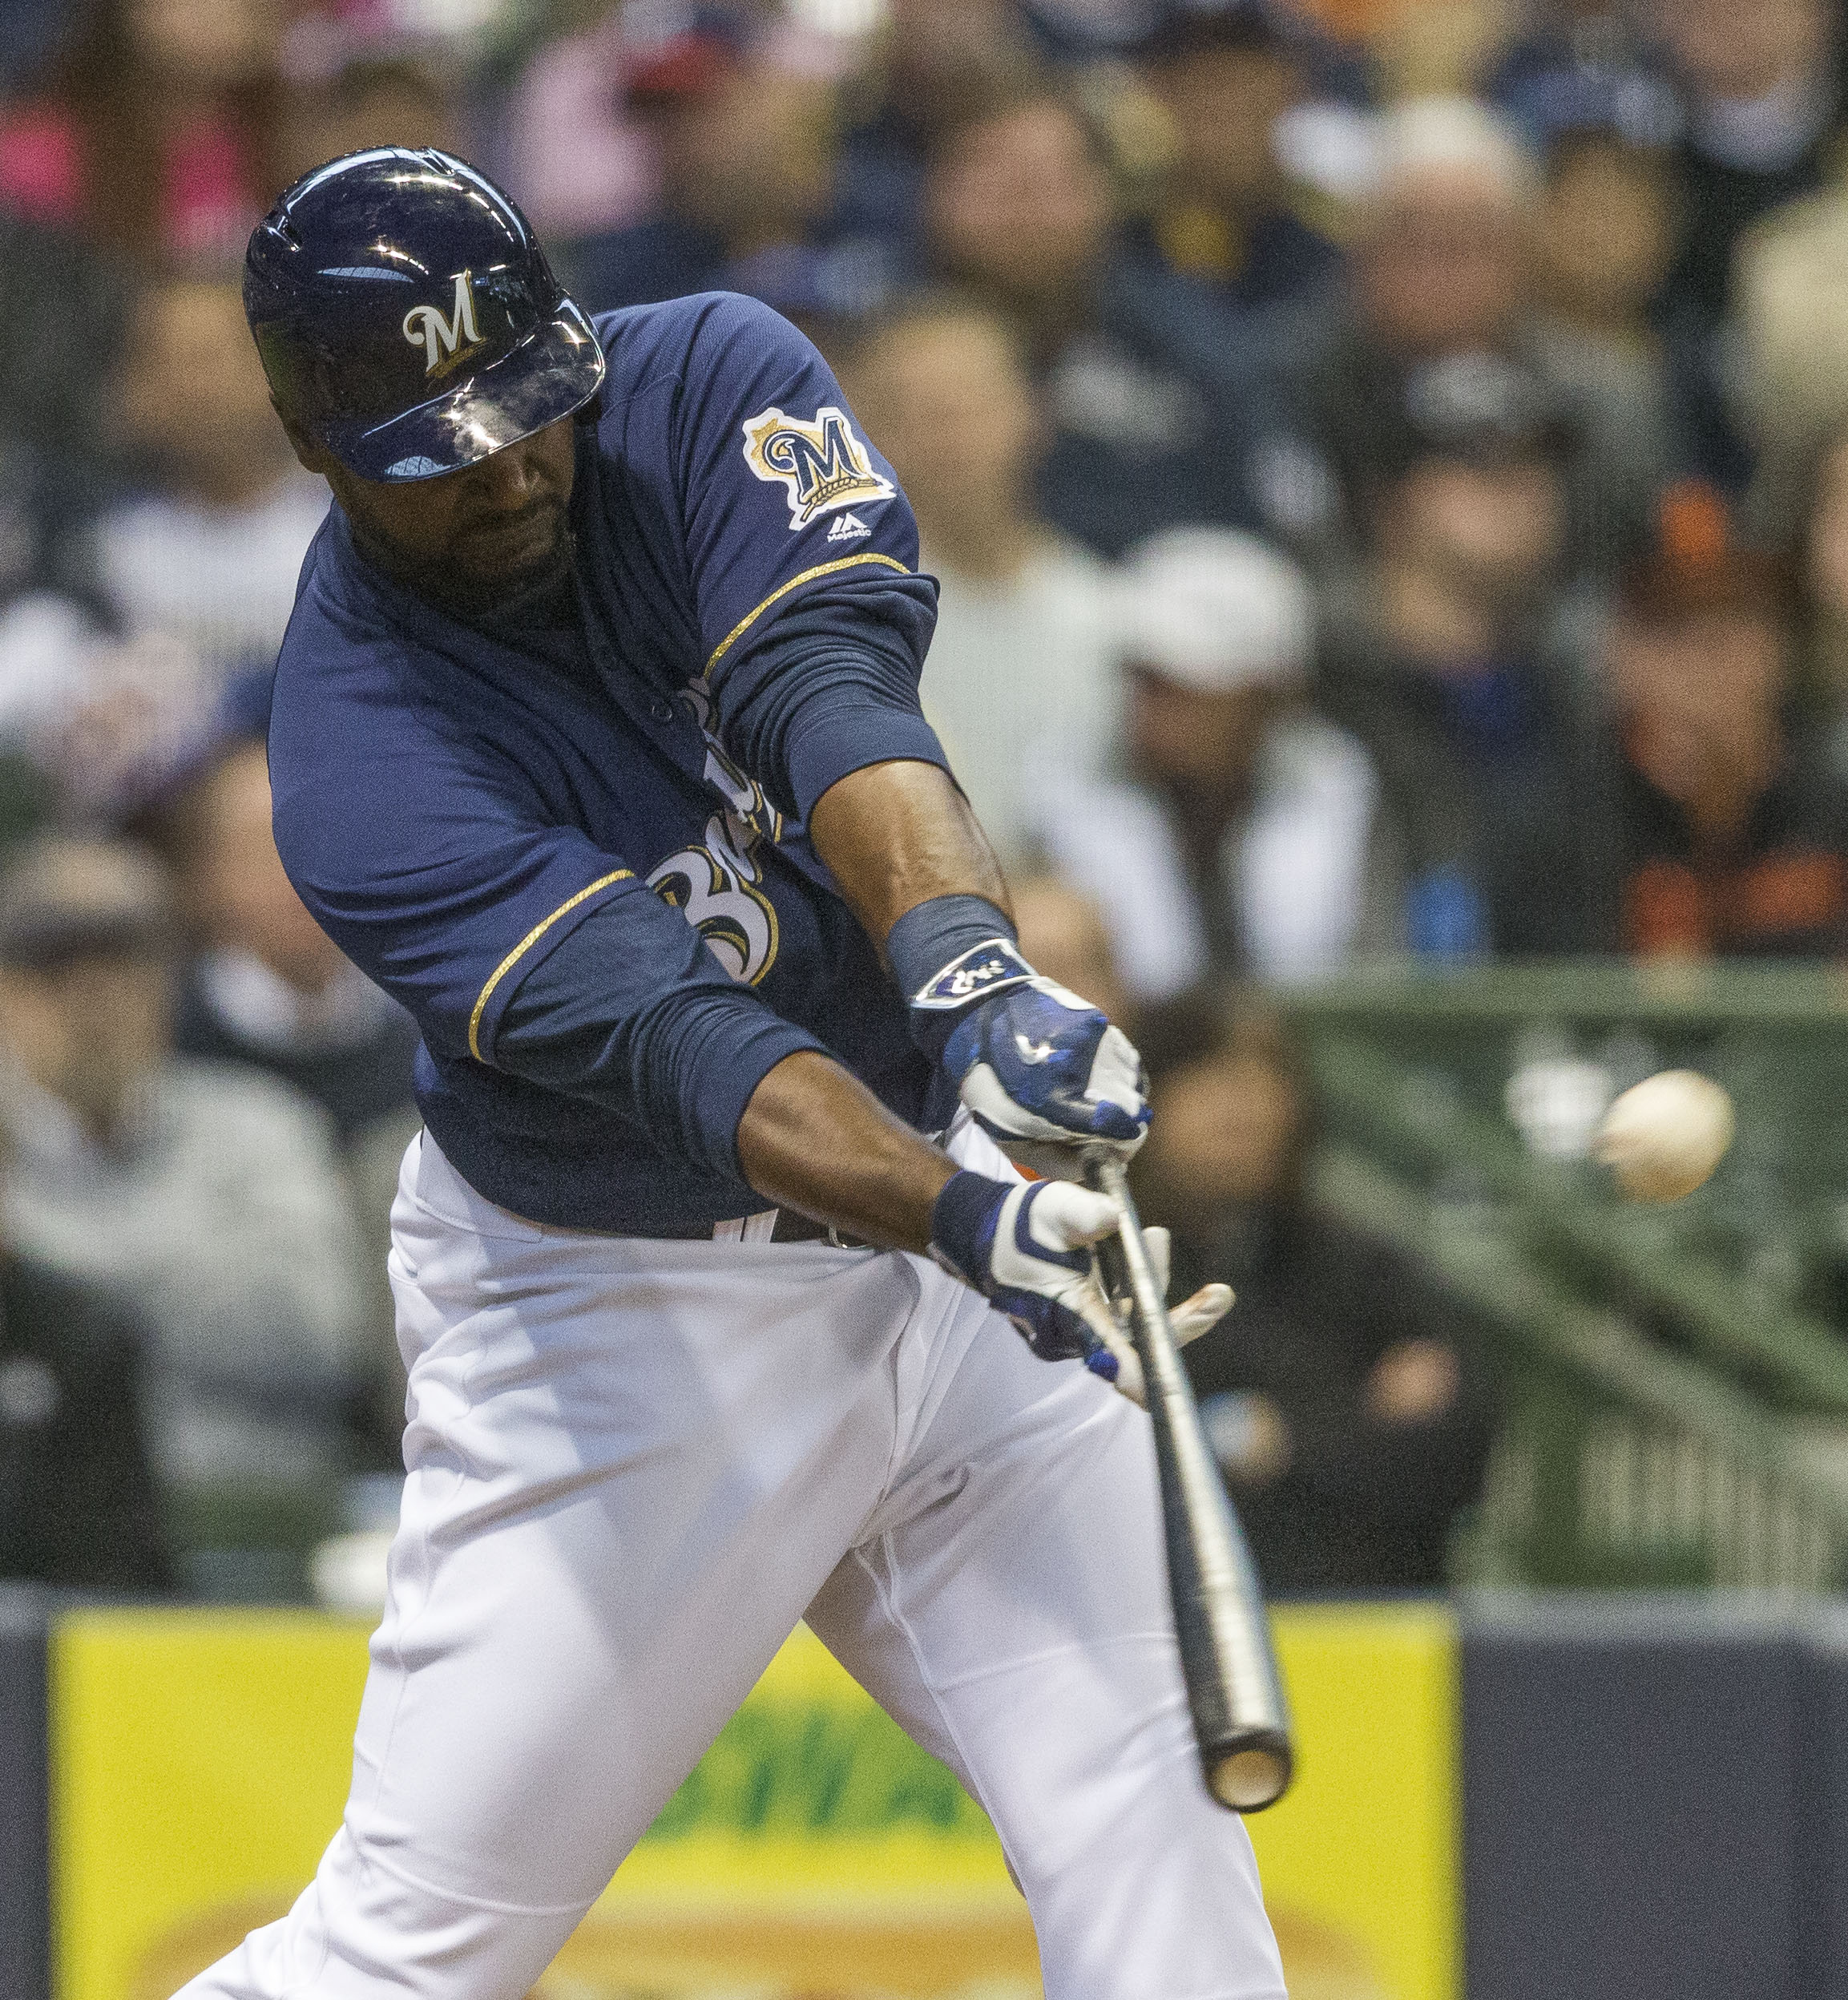 Milwaukee Brewers' Chris Carter connects for a sacrifice fly giving the Brewers the lead over the San Fransisco Giants during the seventh inning of a baseball game Wednesday, April 6, 2016, in Milwaukee. (AP Photo/Tom Lynn)